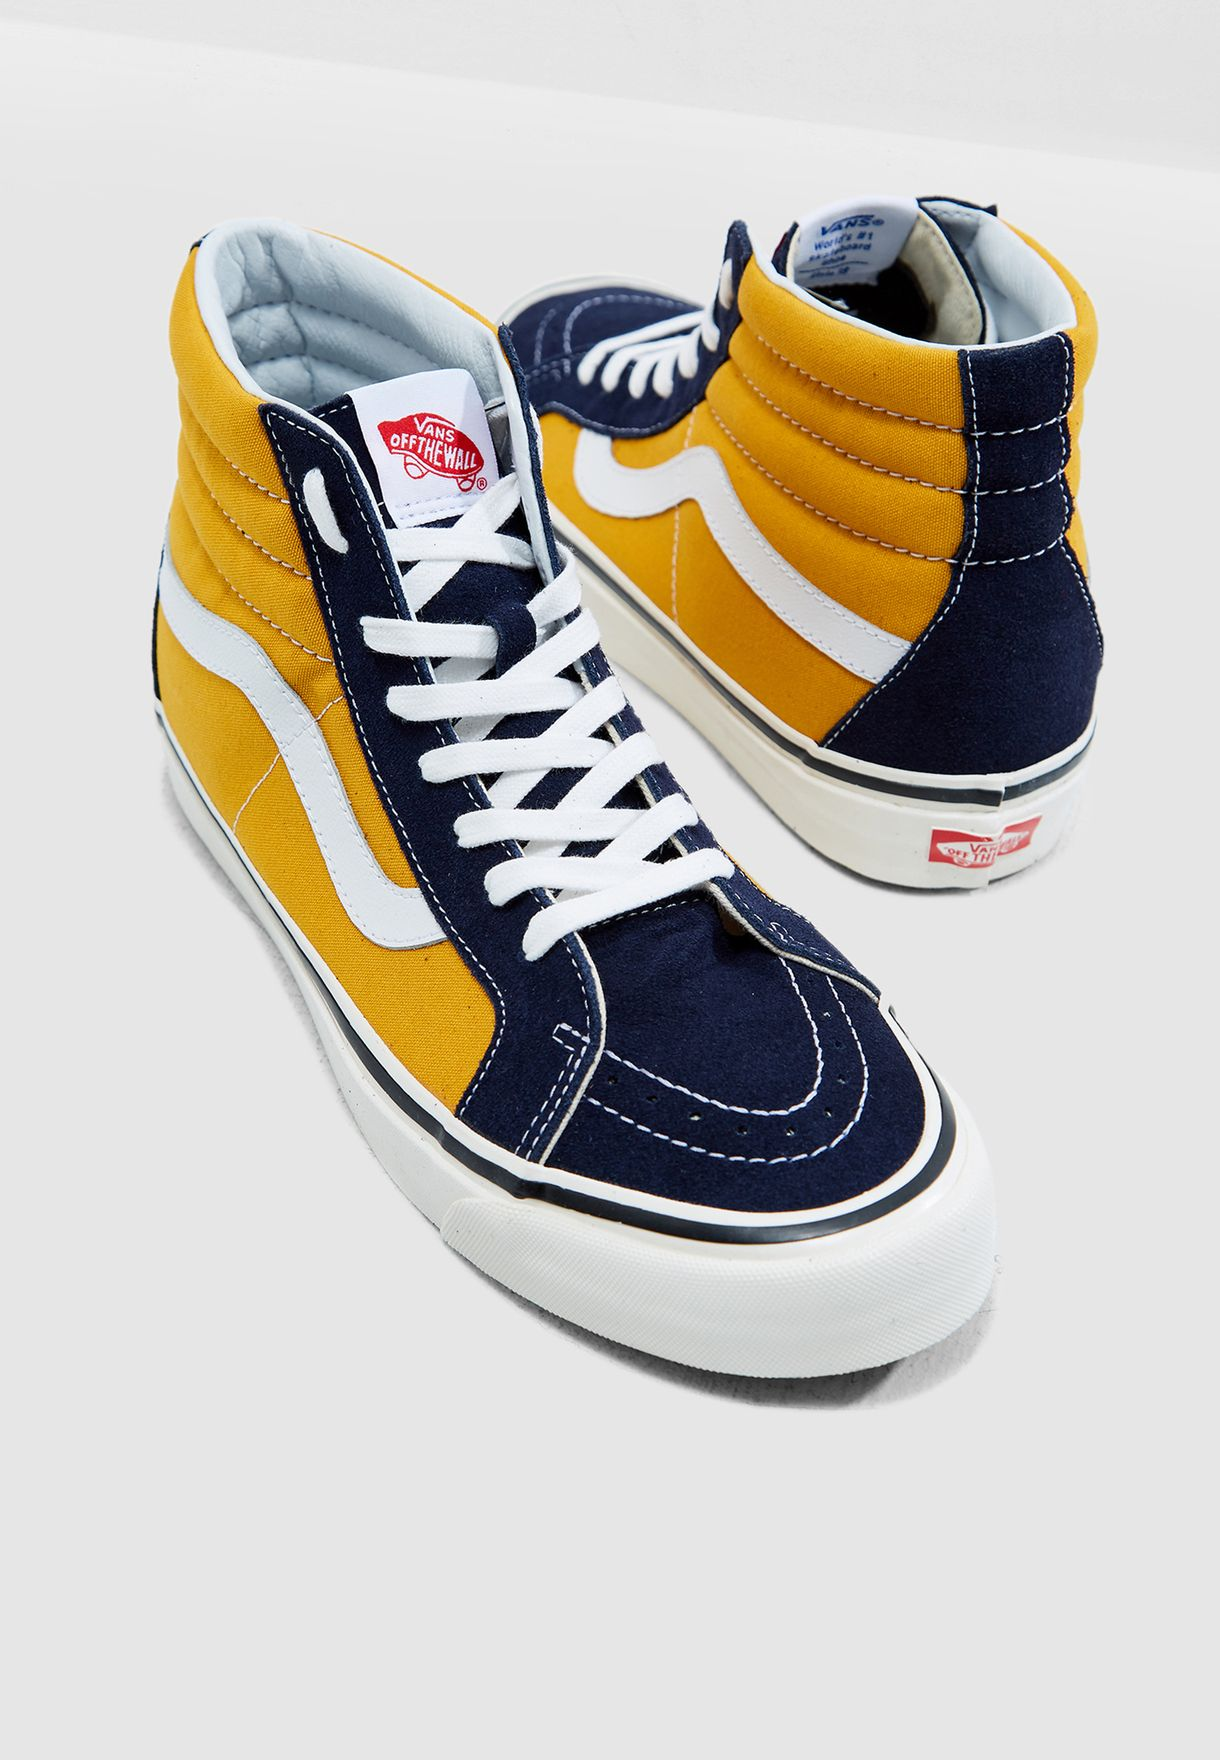 3480f3d7f7c5ec Shop Vans navy Anaheim Factory SK8-Hi 38 DX 8GFUBT for Men in Qatar -  VA088SH82ATX